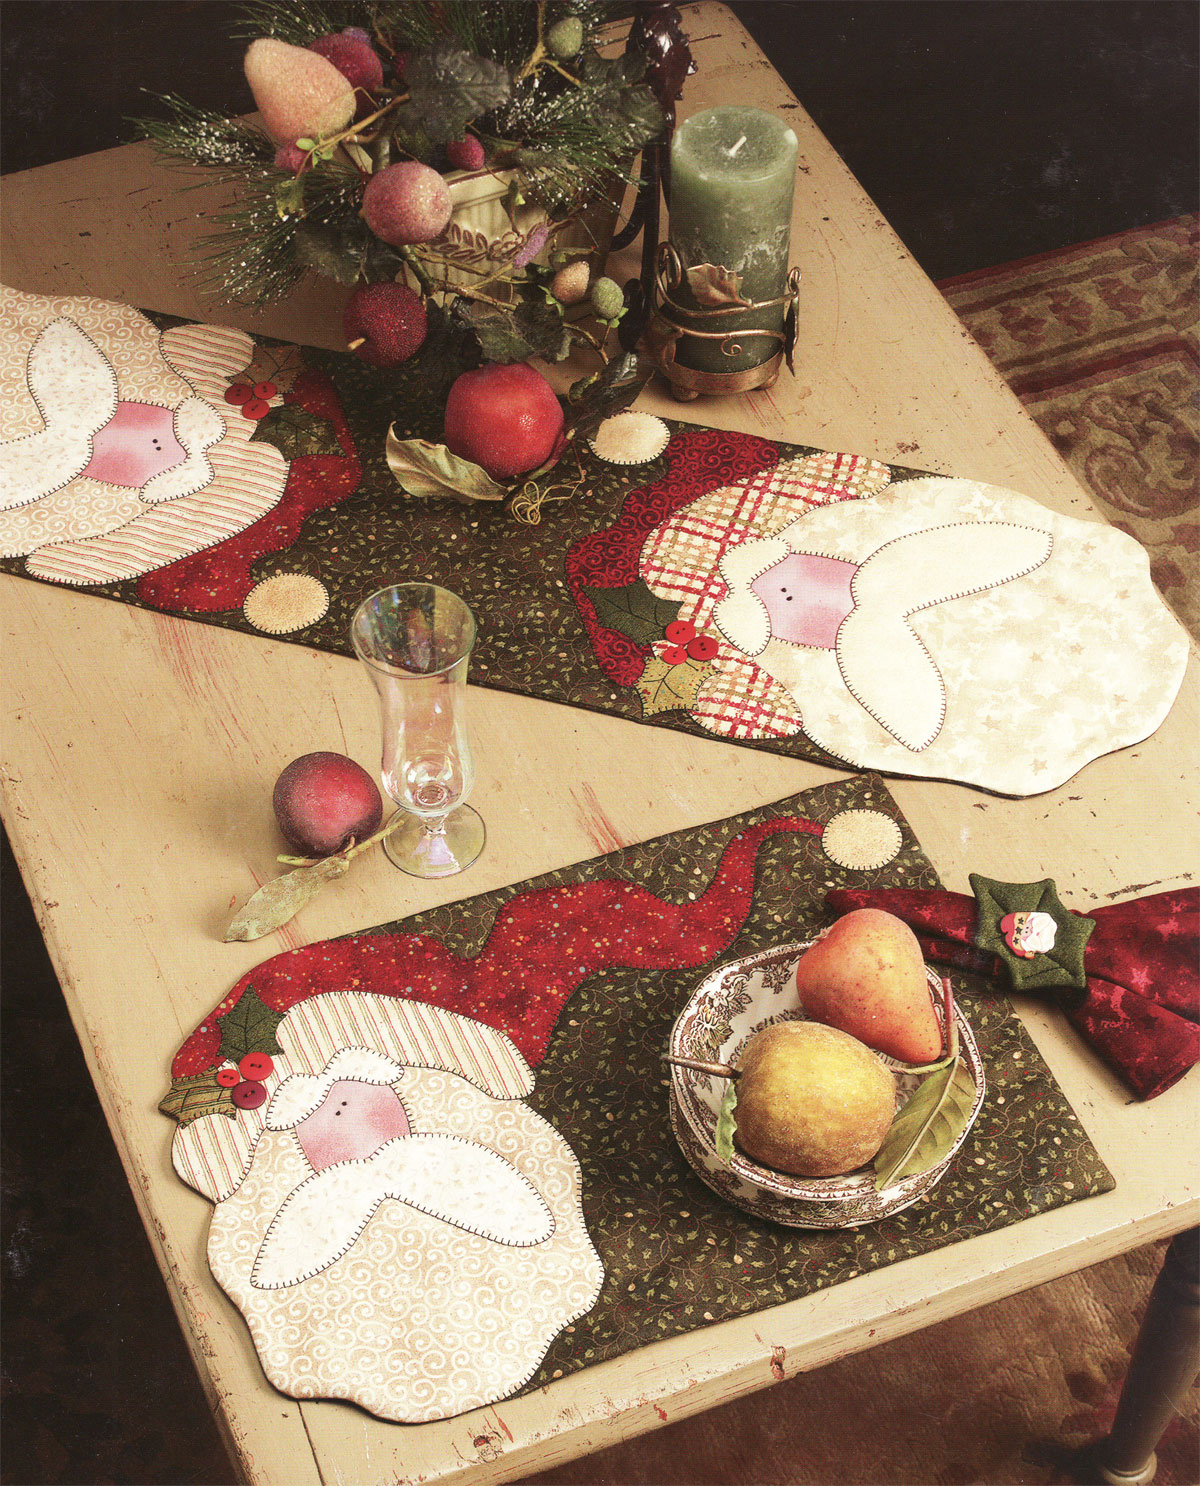 Happy-Holidays-to-You-sewing-pattern-book-Art-To-Heart-1